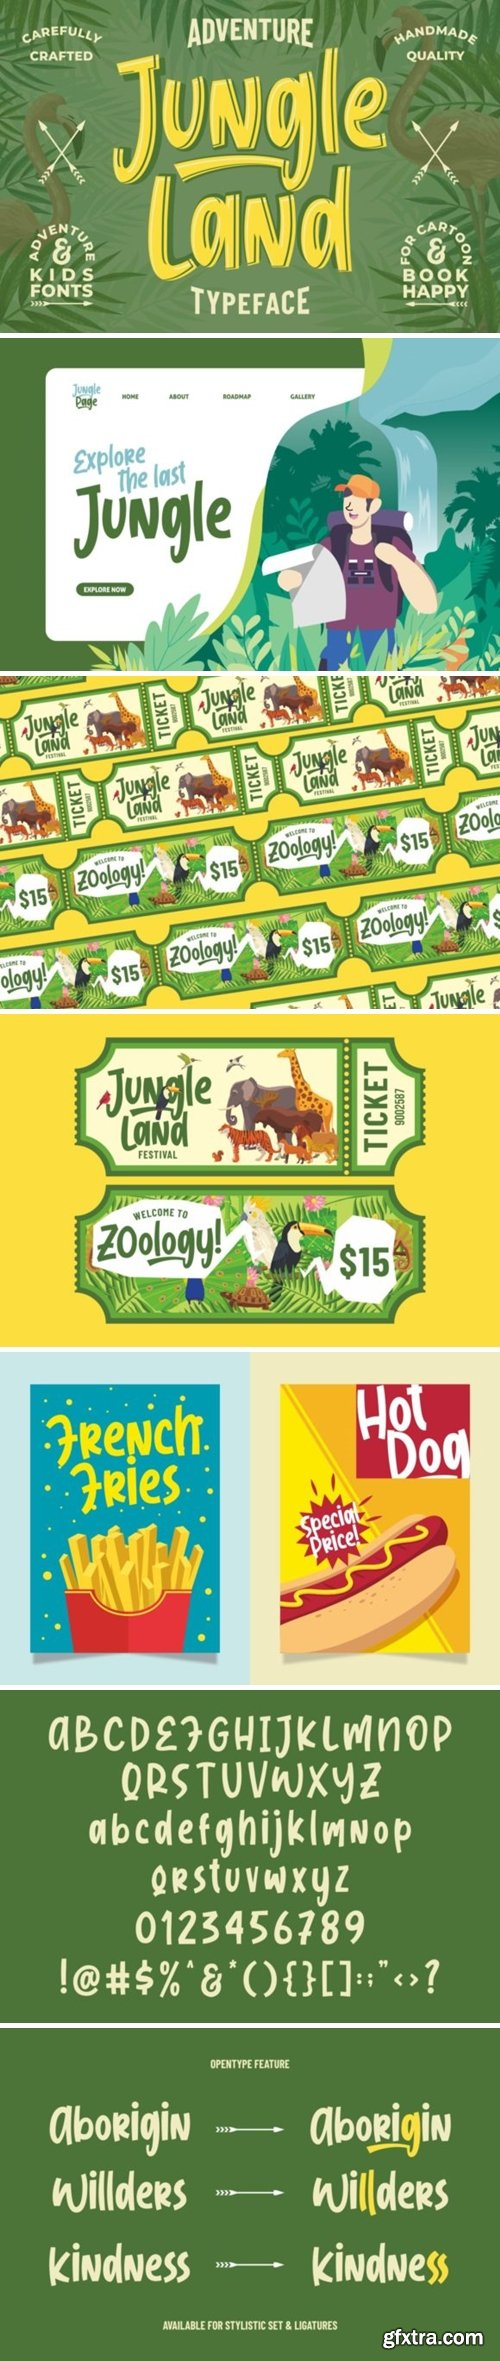 CM - Jungle Land || Kidsventure Font 4477796